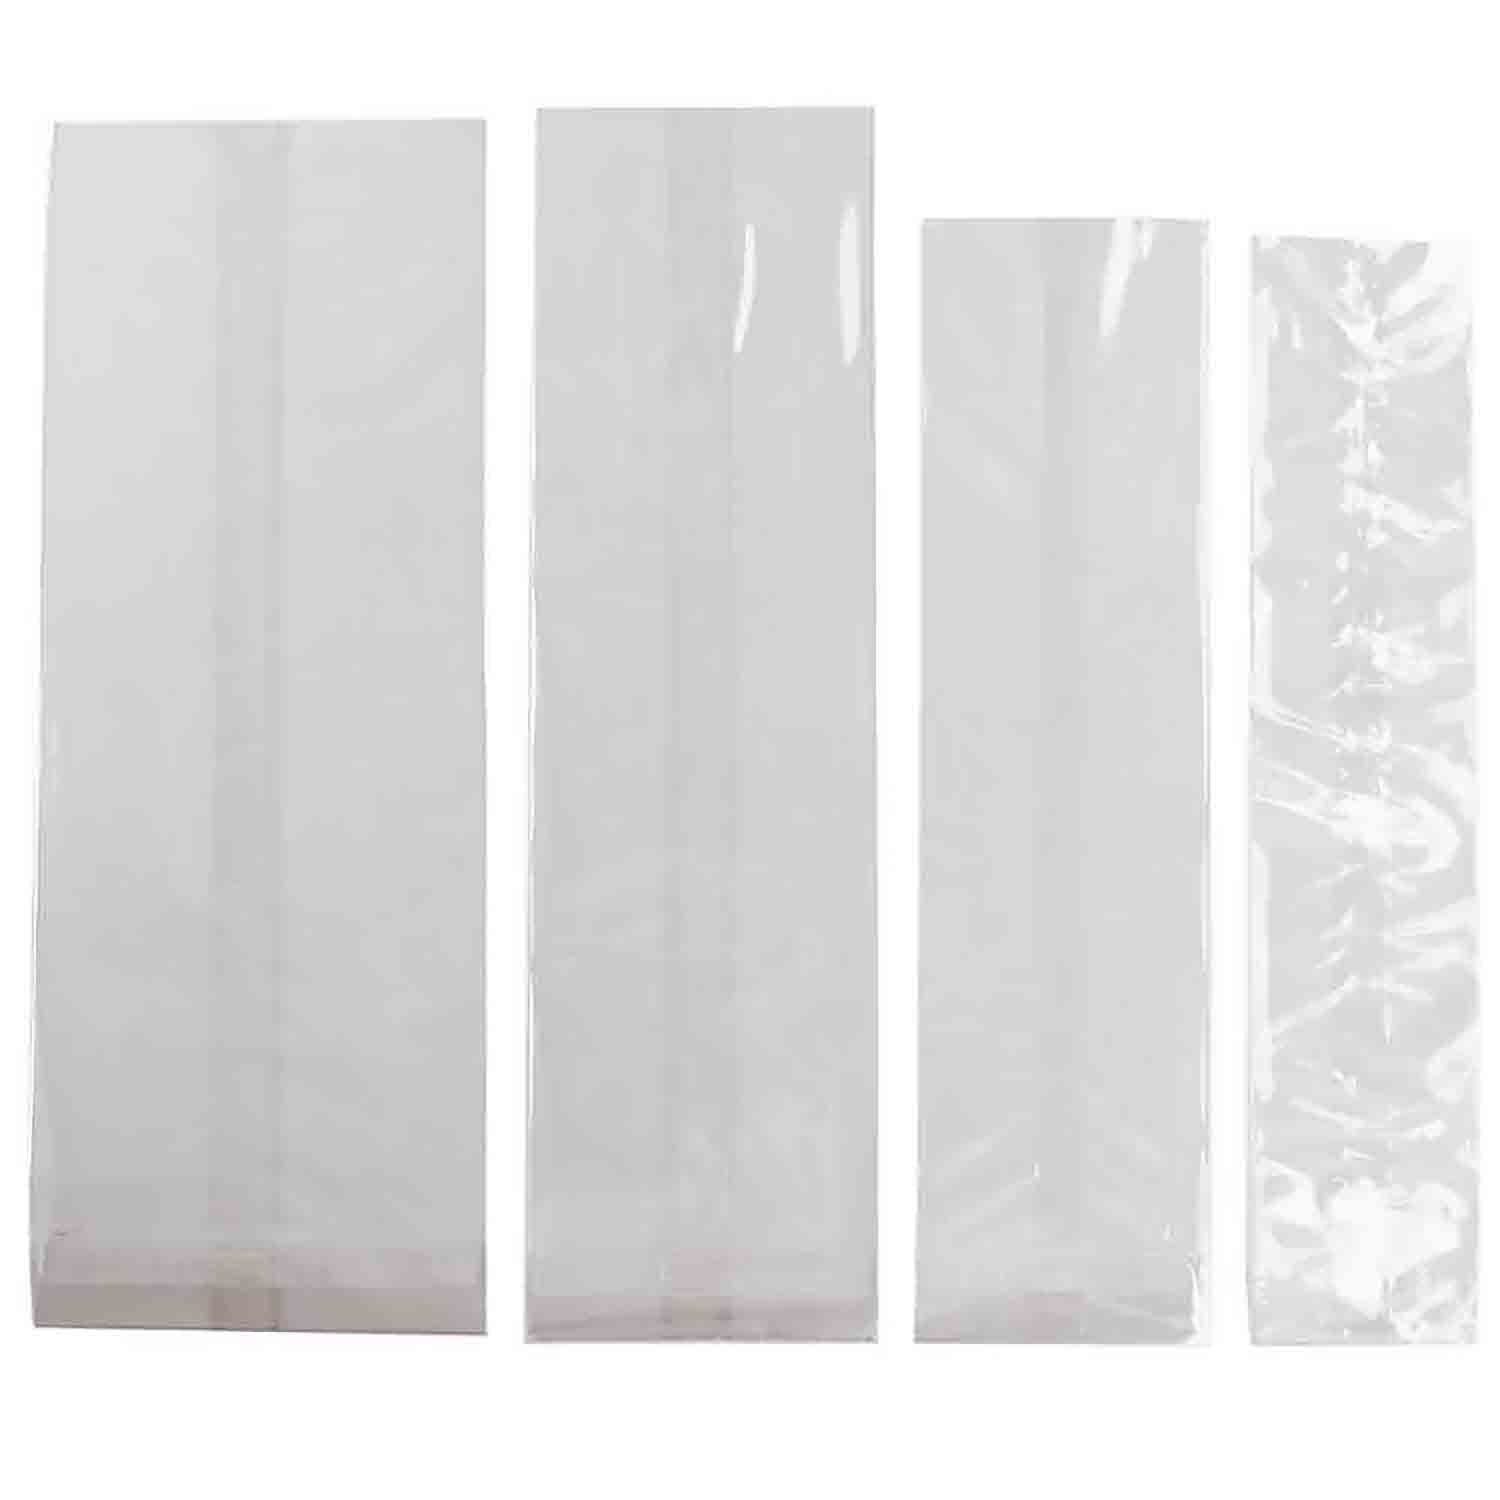 Pretzel Cellophane Bag Sample Set